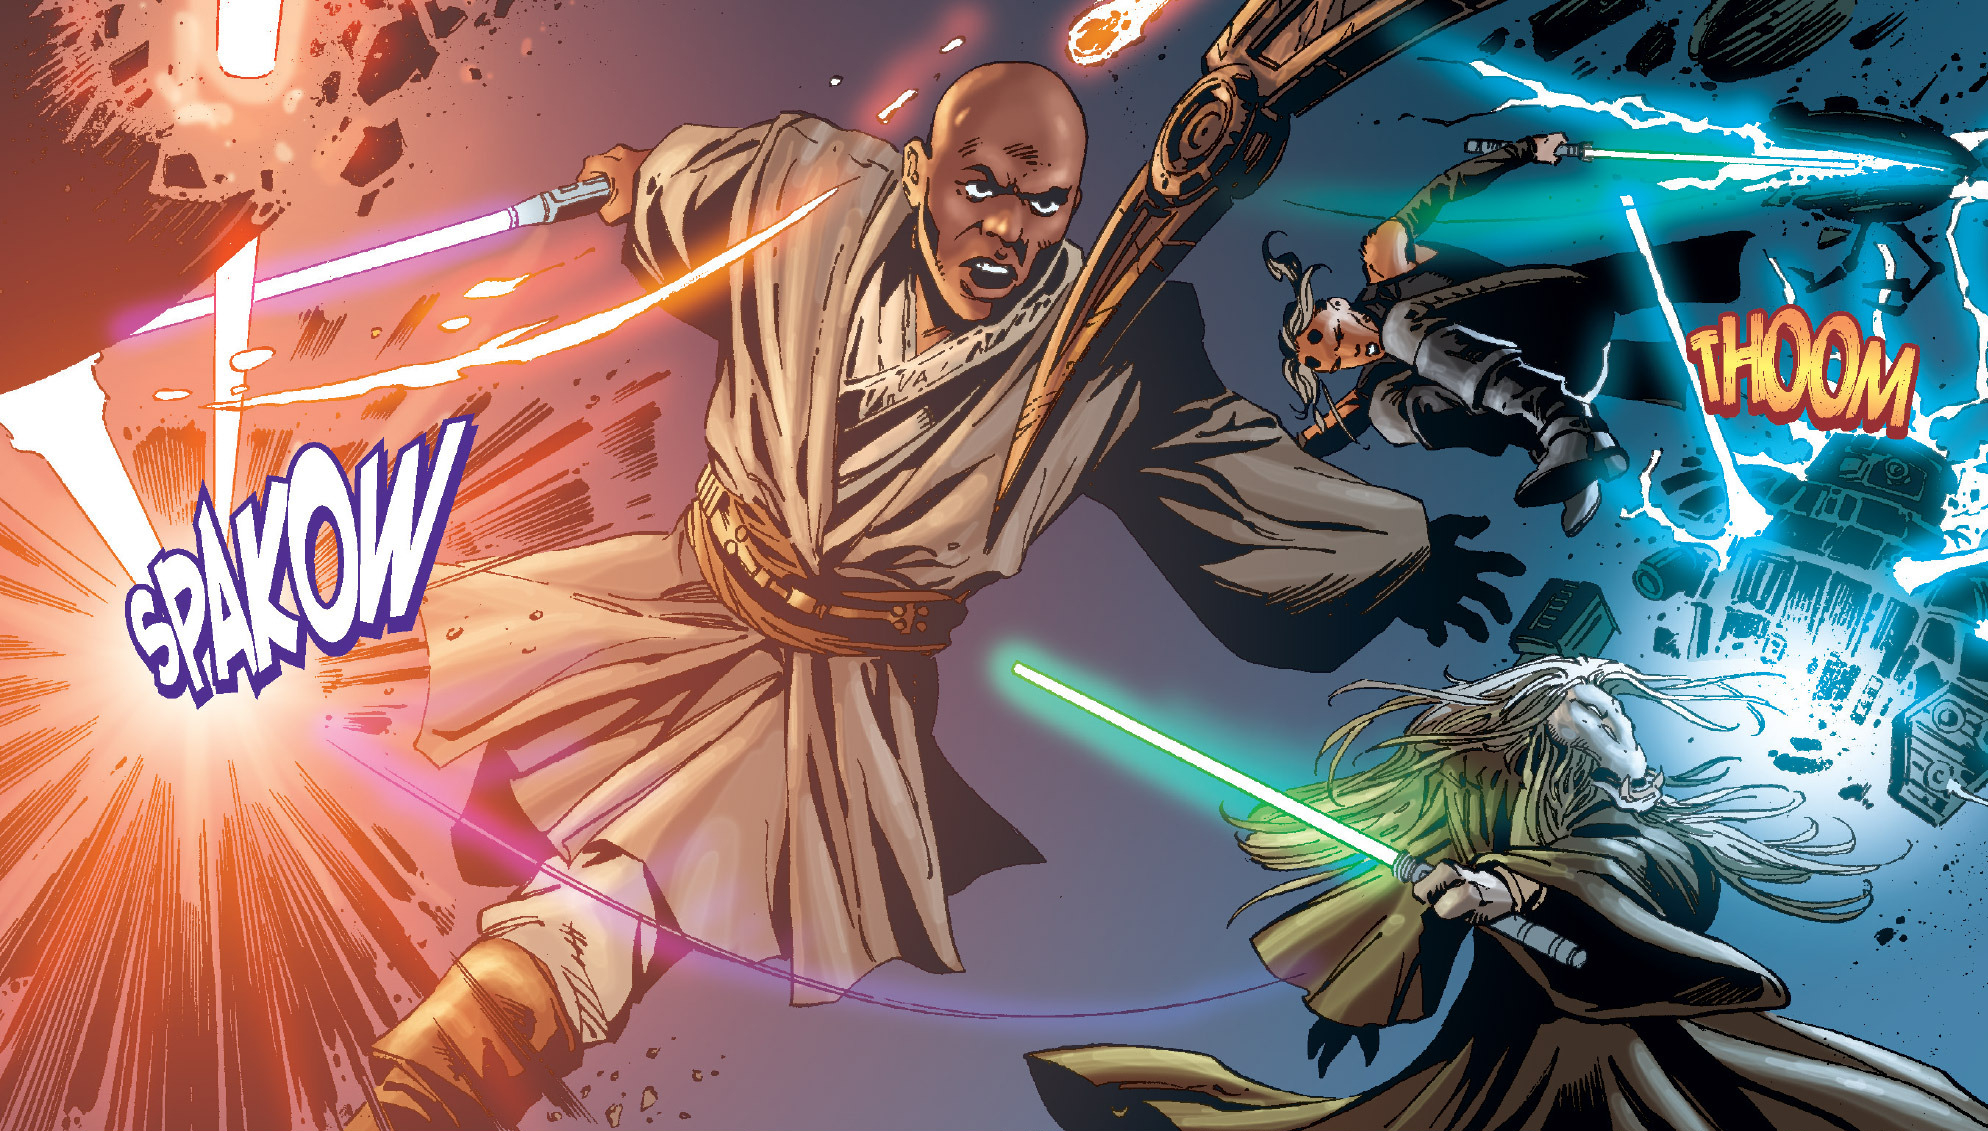 Mission to Ruul (Clone Wars)